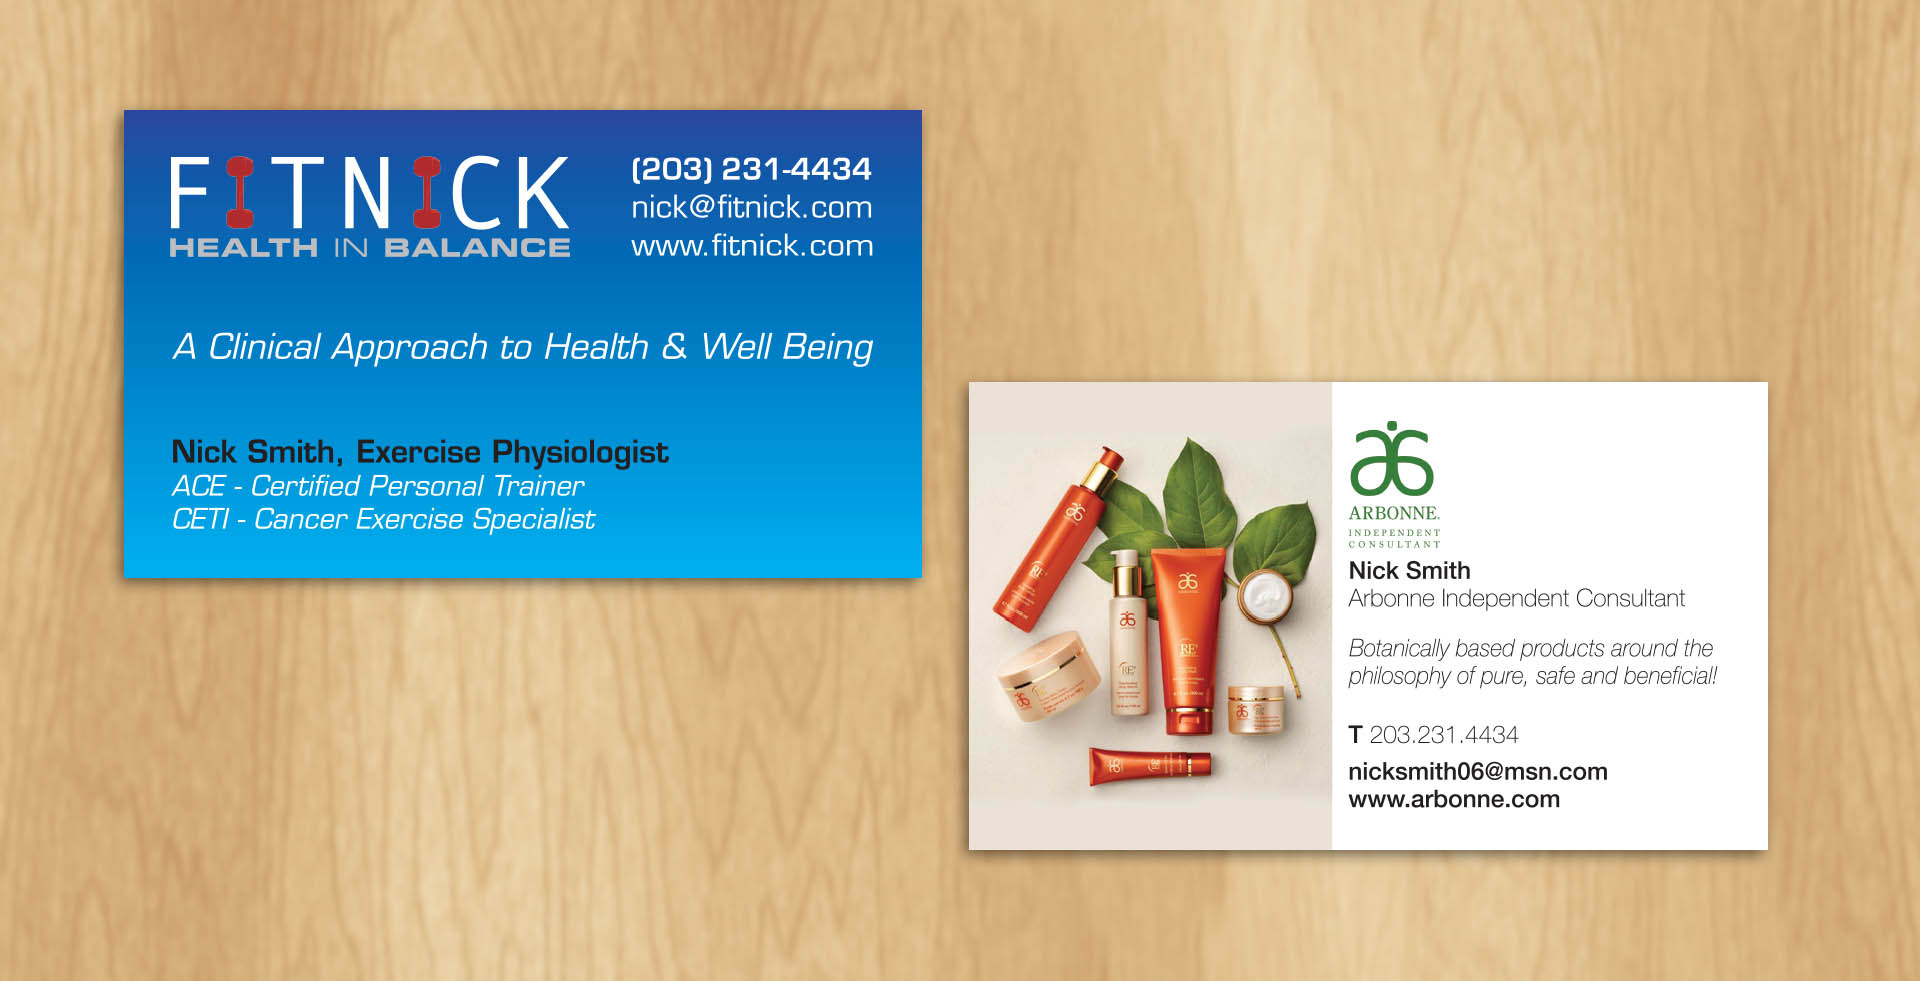 Business Card Design | Boss Office Works